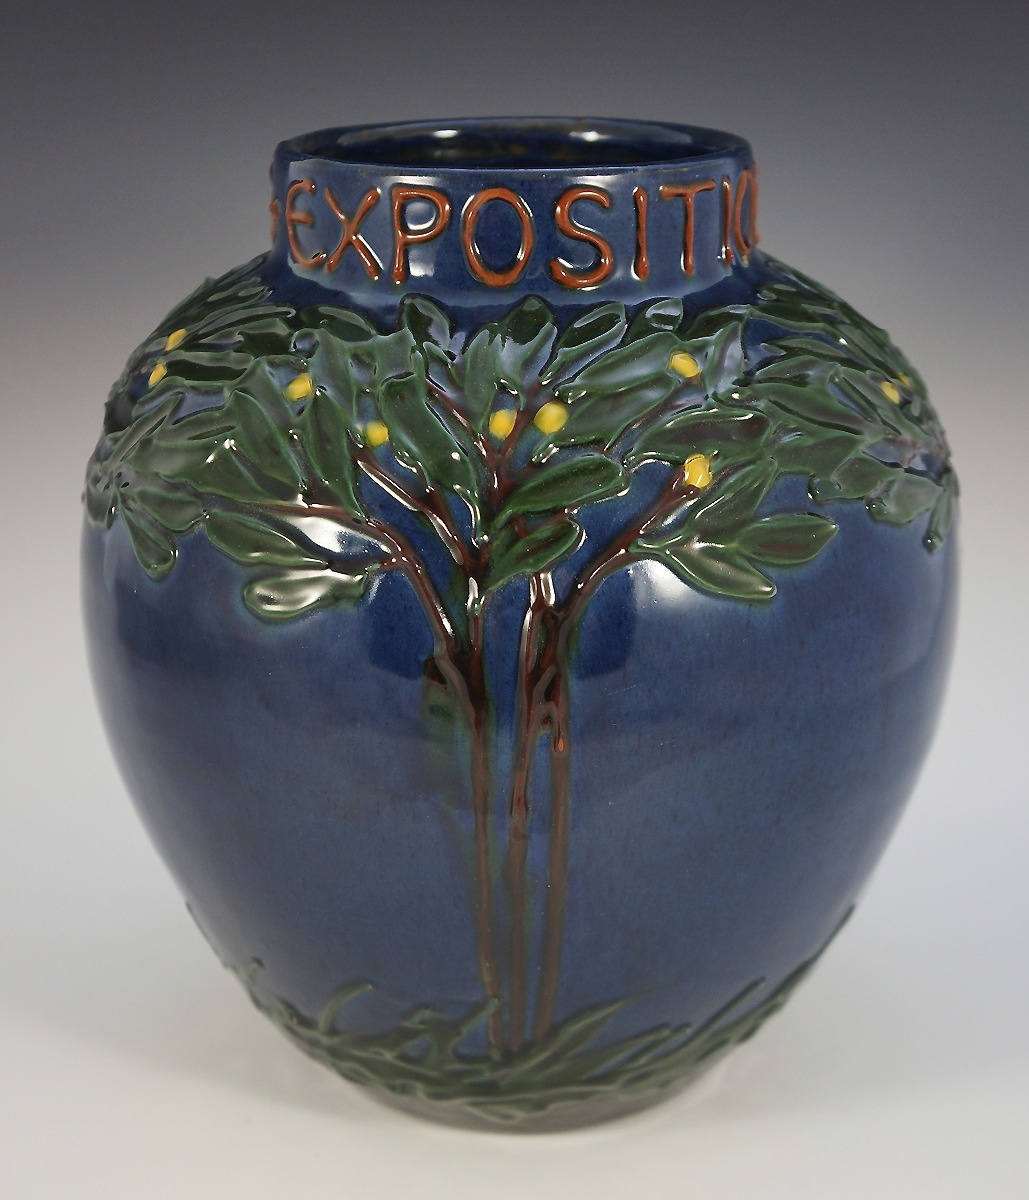 Max luger la maison moderne paris expo 1900 vase collectors max luger la maison moderne paris expo 1900 vase collectors weekly reviewsmspy